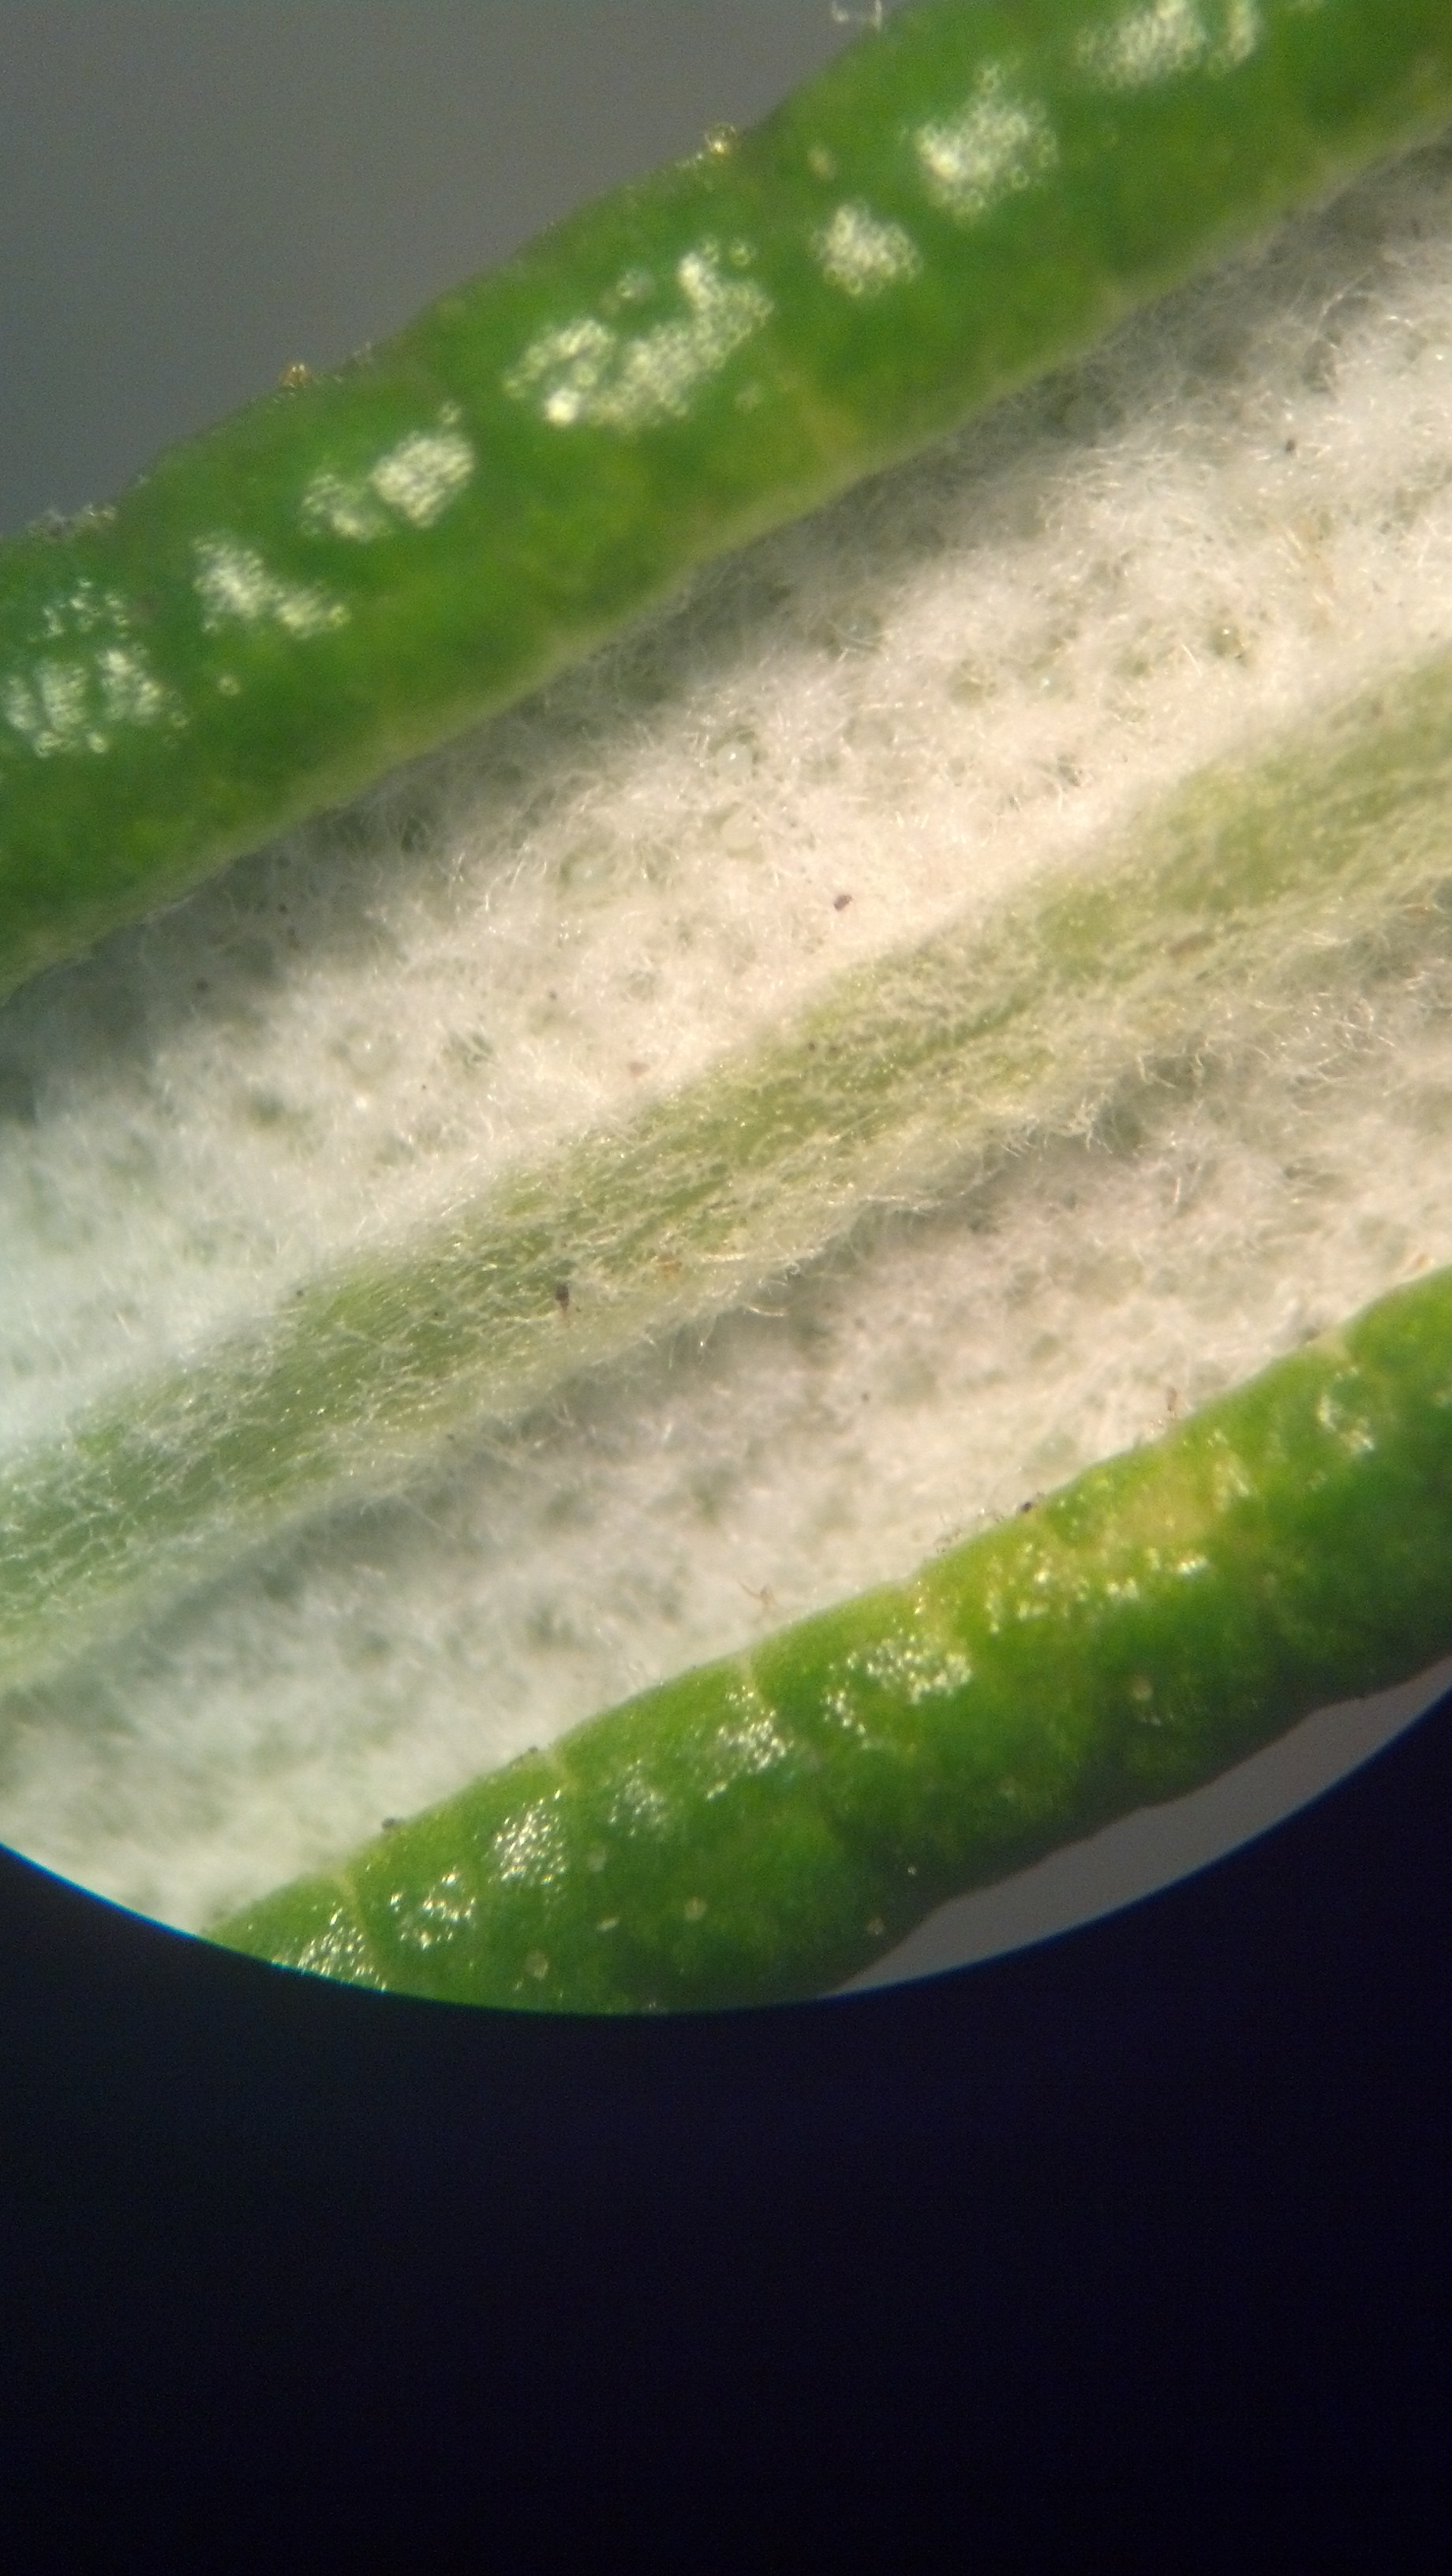 Oil glands and trichomes (hairs) on the underside of a rosemary leaf ( Rosmarinus  sp.)